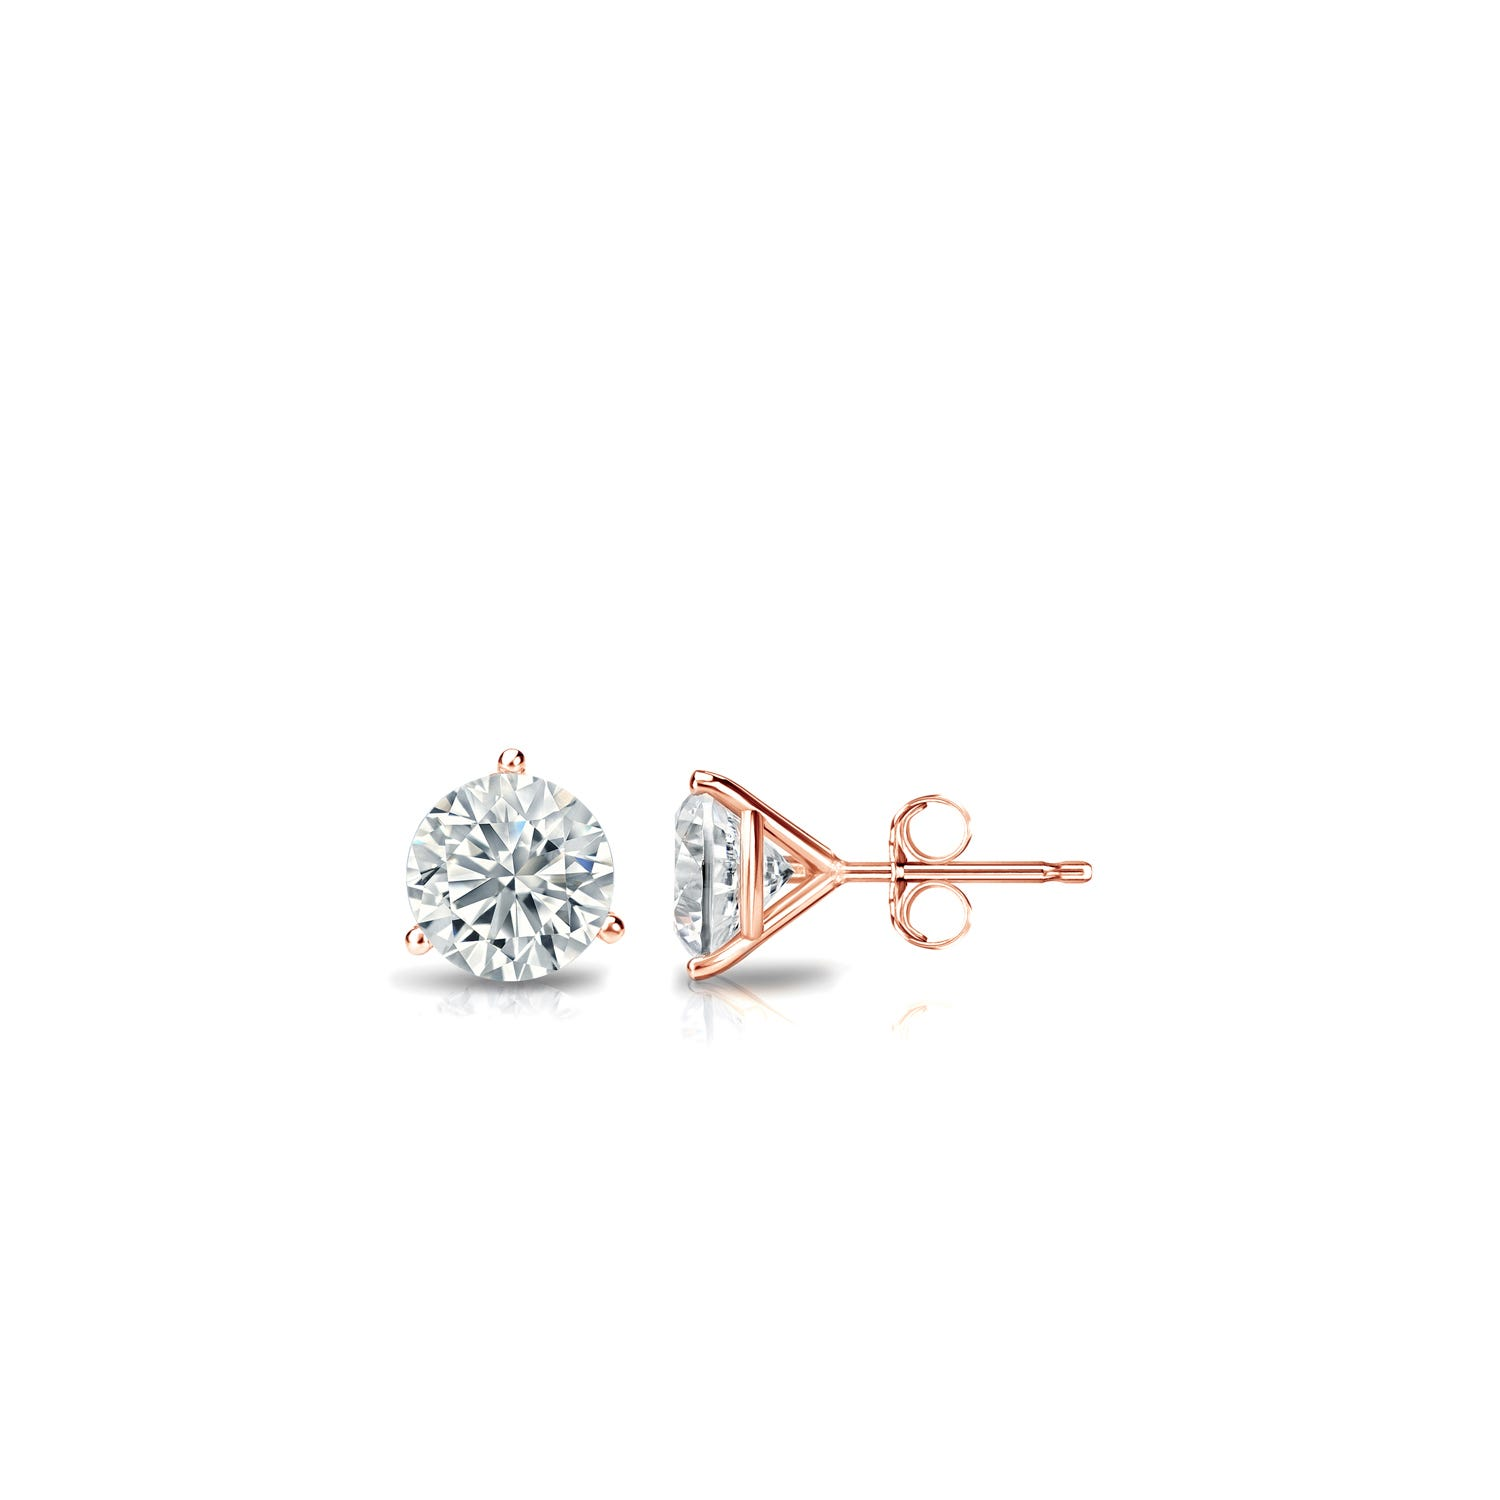 1/6 CTTW Round Diamond Solitaire Stud Earrings IJ SI2 in 14K Rose Gold 3-Prong Setting